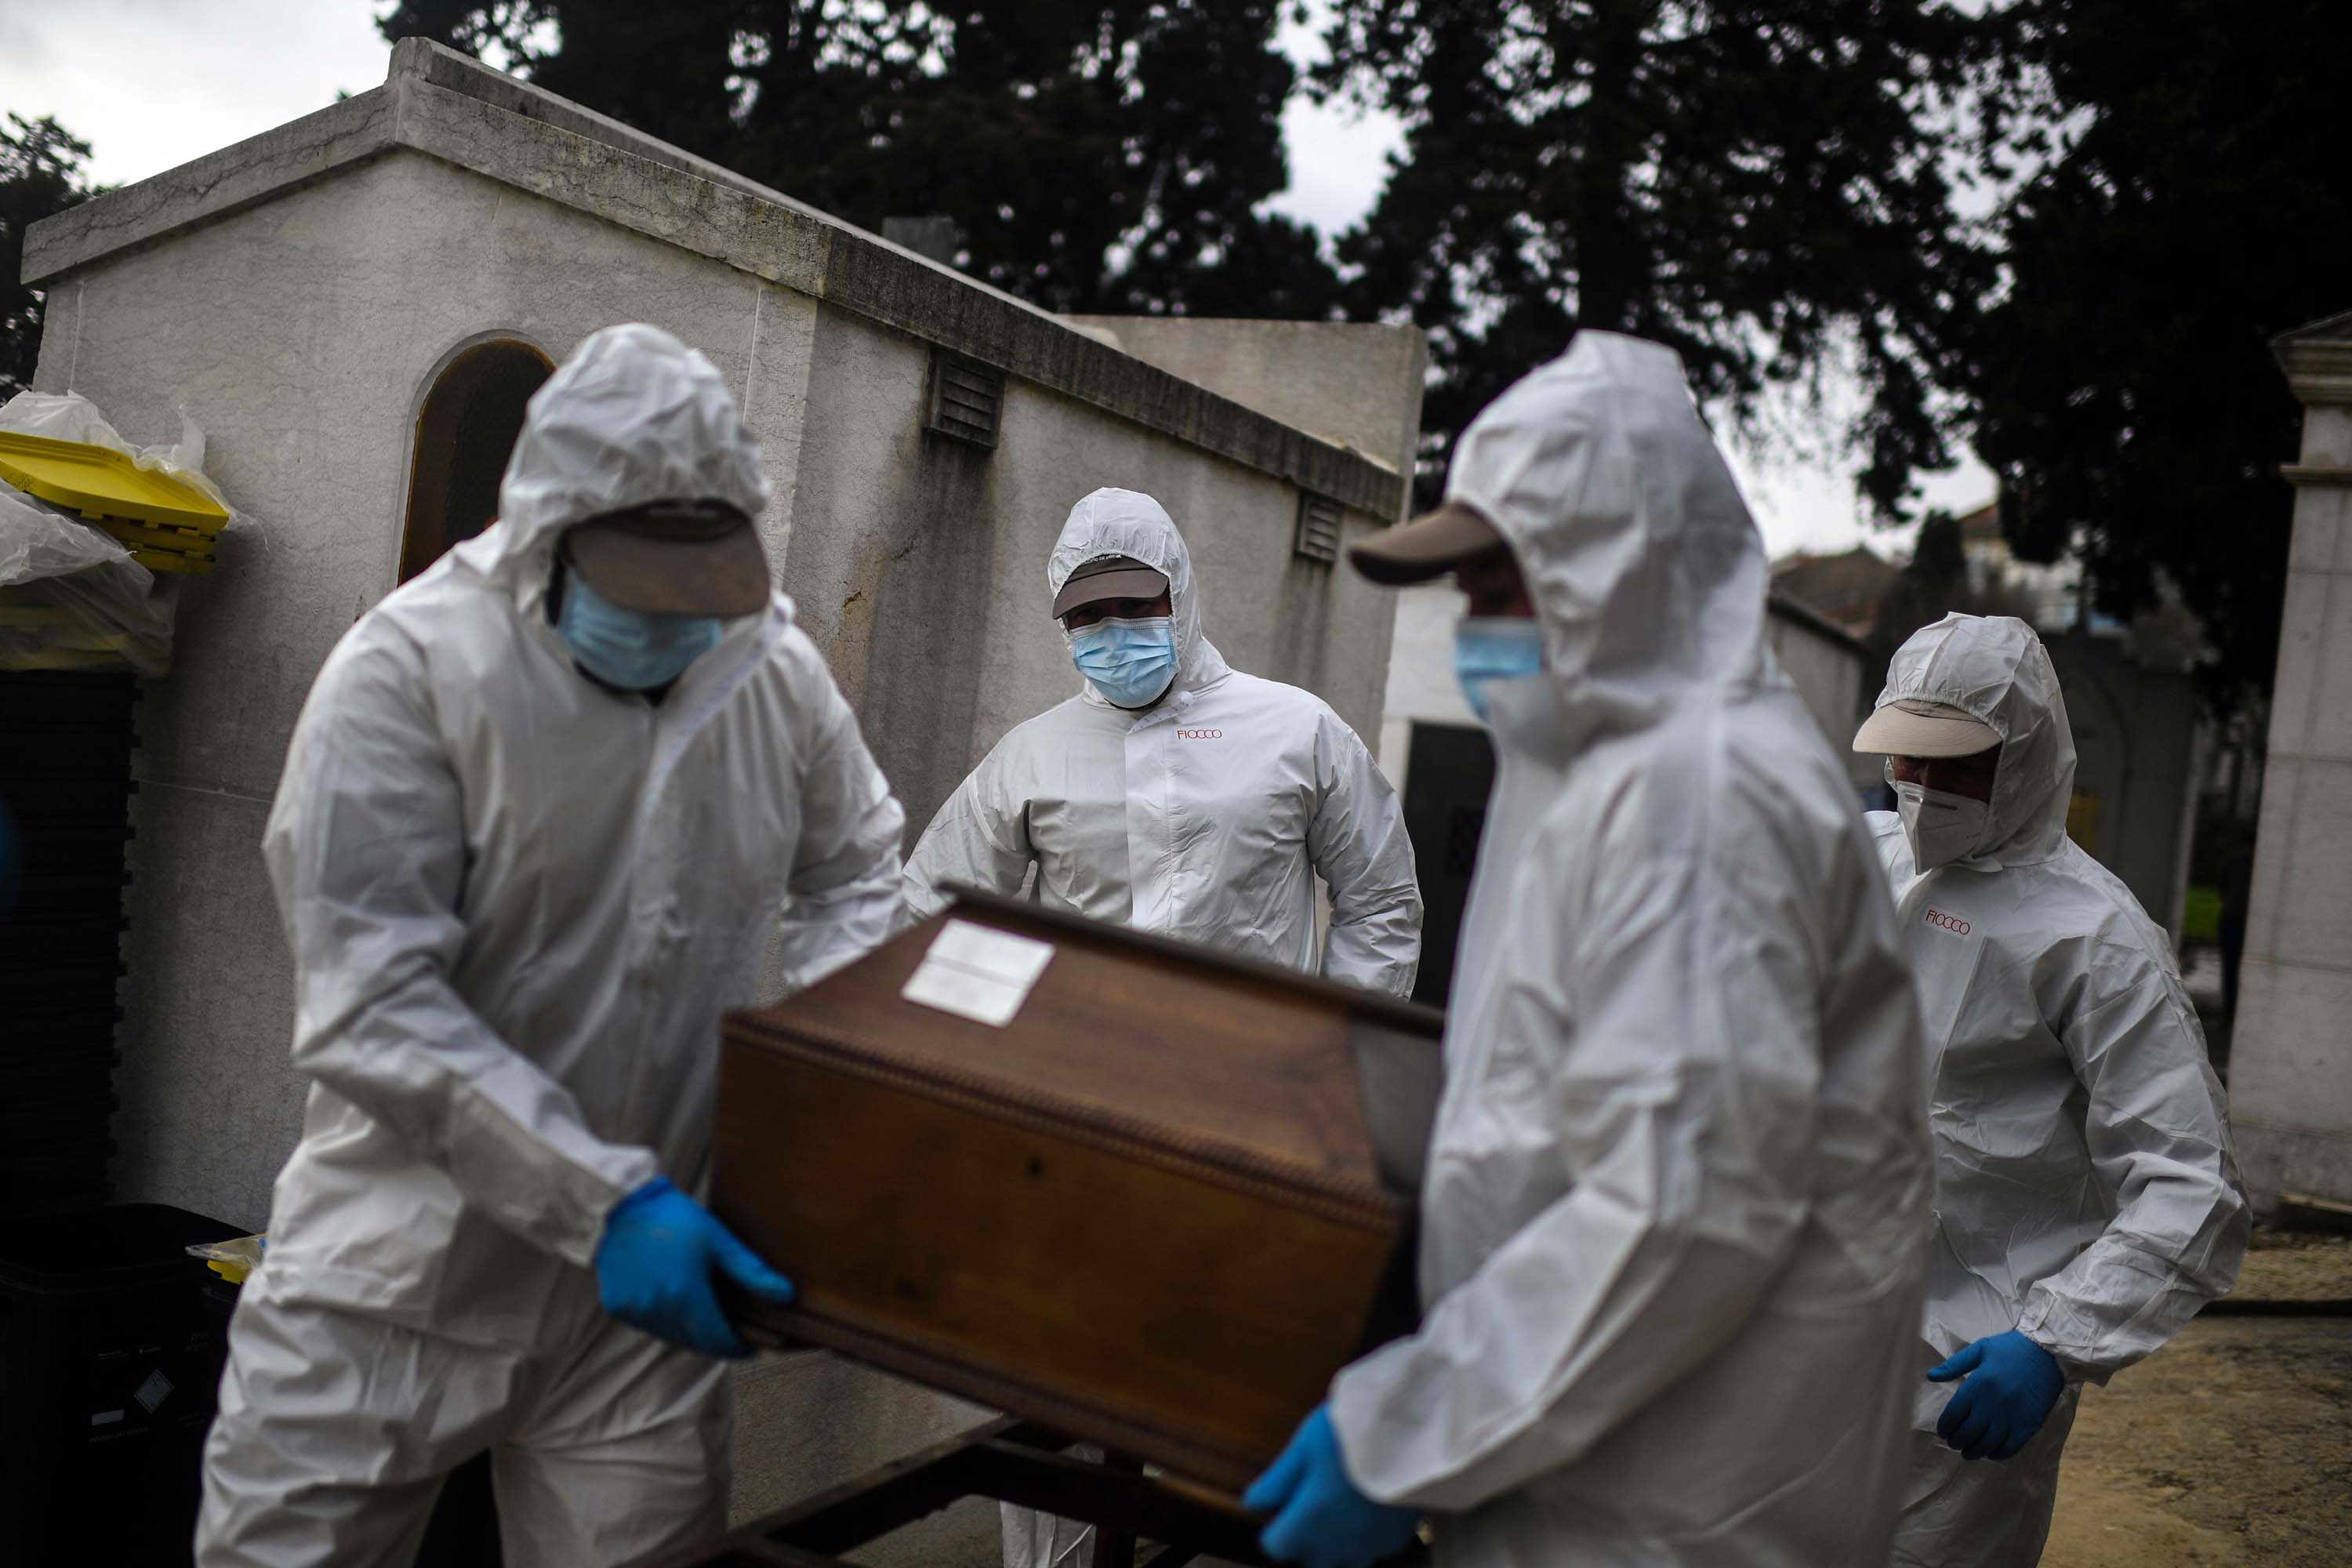 Grave diggers carry the coffin of a Covid-19 victim at the Alto de Sao Joao cemetery in Lisbon, Portugal, on February 18.